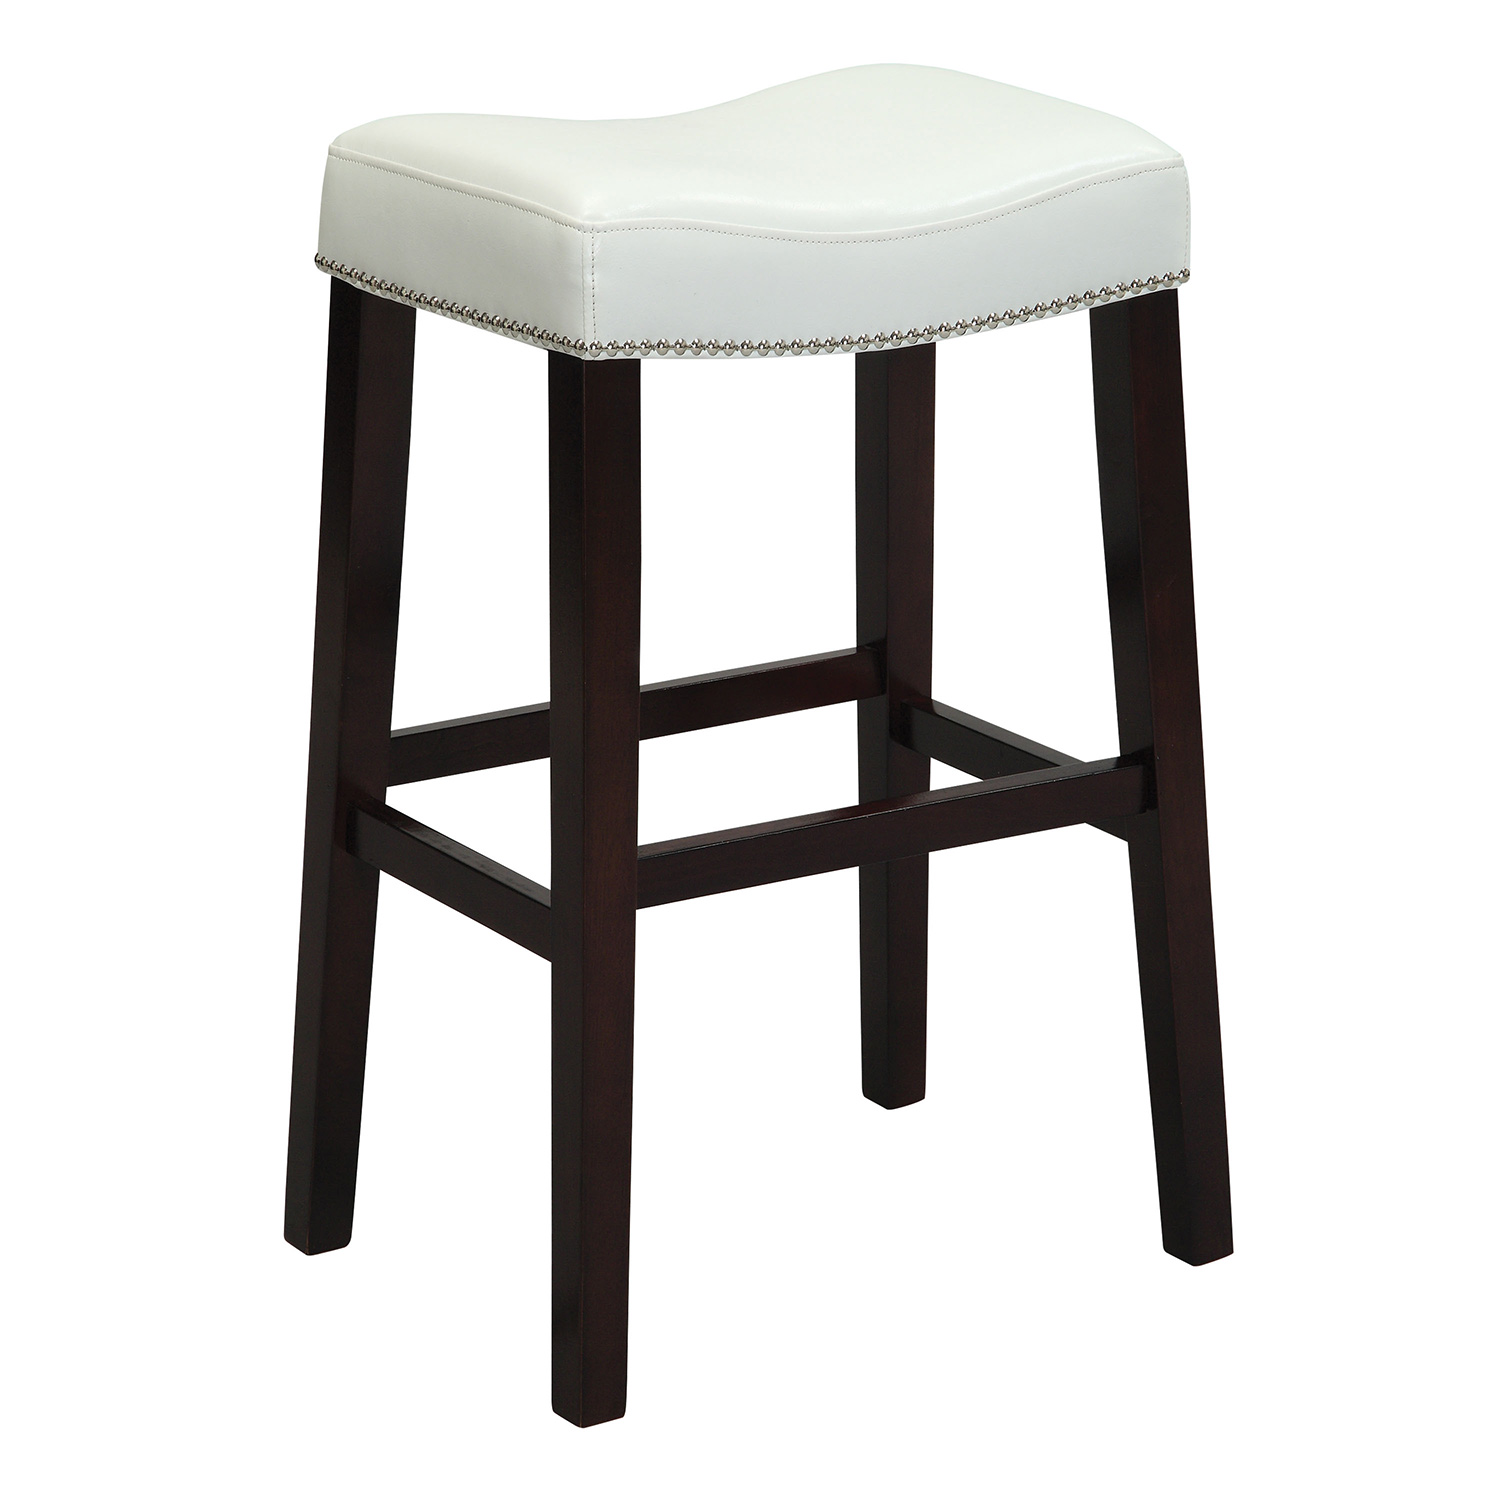 Acme Lewis Bar Stool - White Vinyl/Espresso